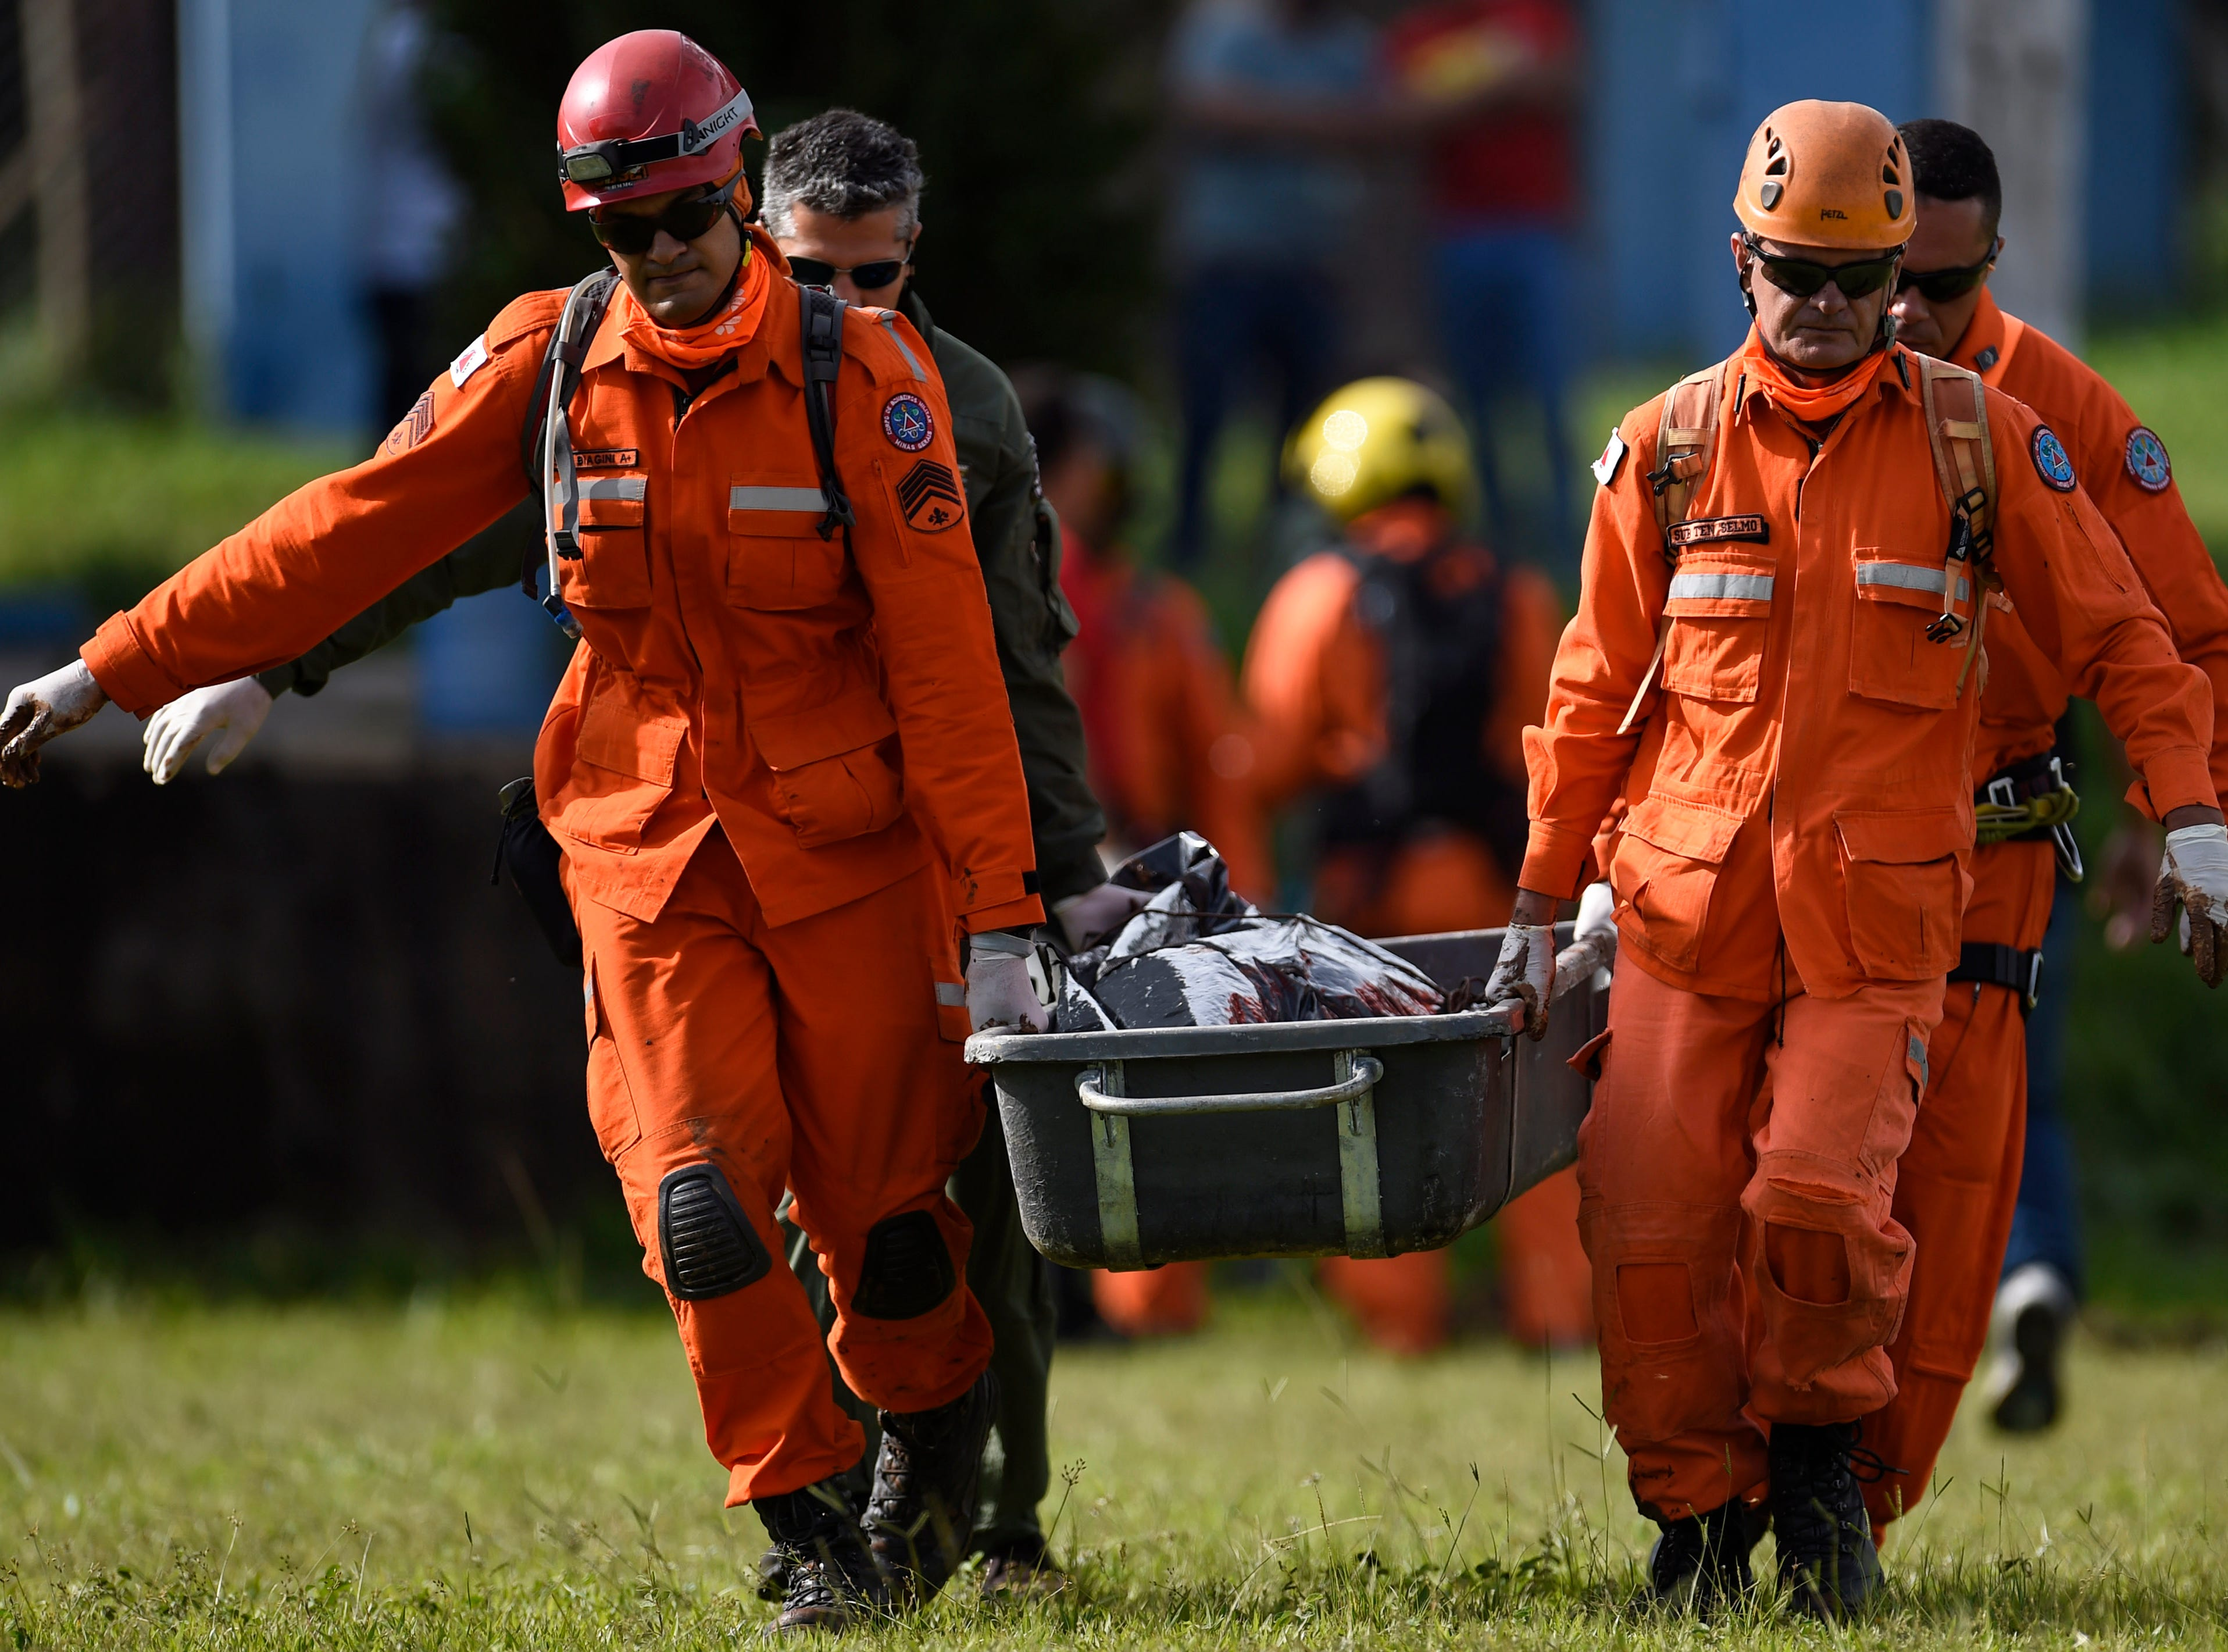 Military firefighters carry the corpse of a victim recovered from the mud a day after the collapse of a dam at an iron-ore mine belonging to Brazil's giant mining company Vale, near the town of Brumadinho in the state of Minas Gerias in southeastern Brazil, on Jan. 26, 2019.